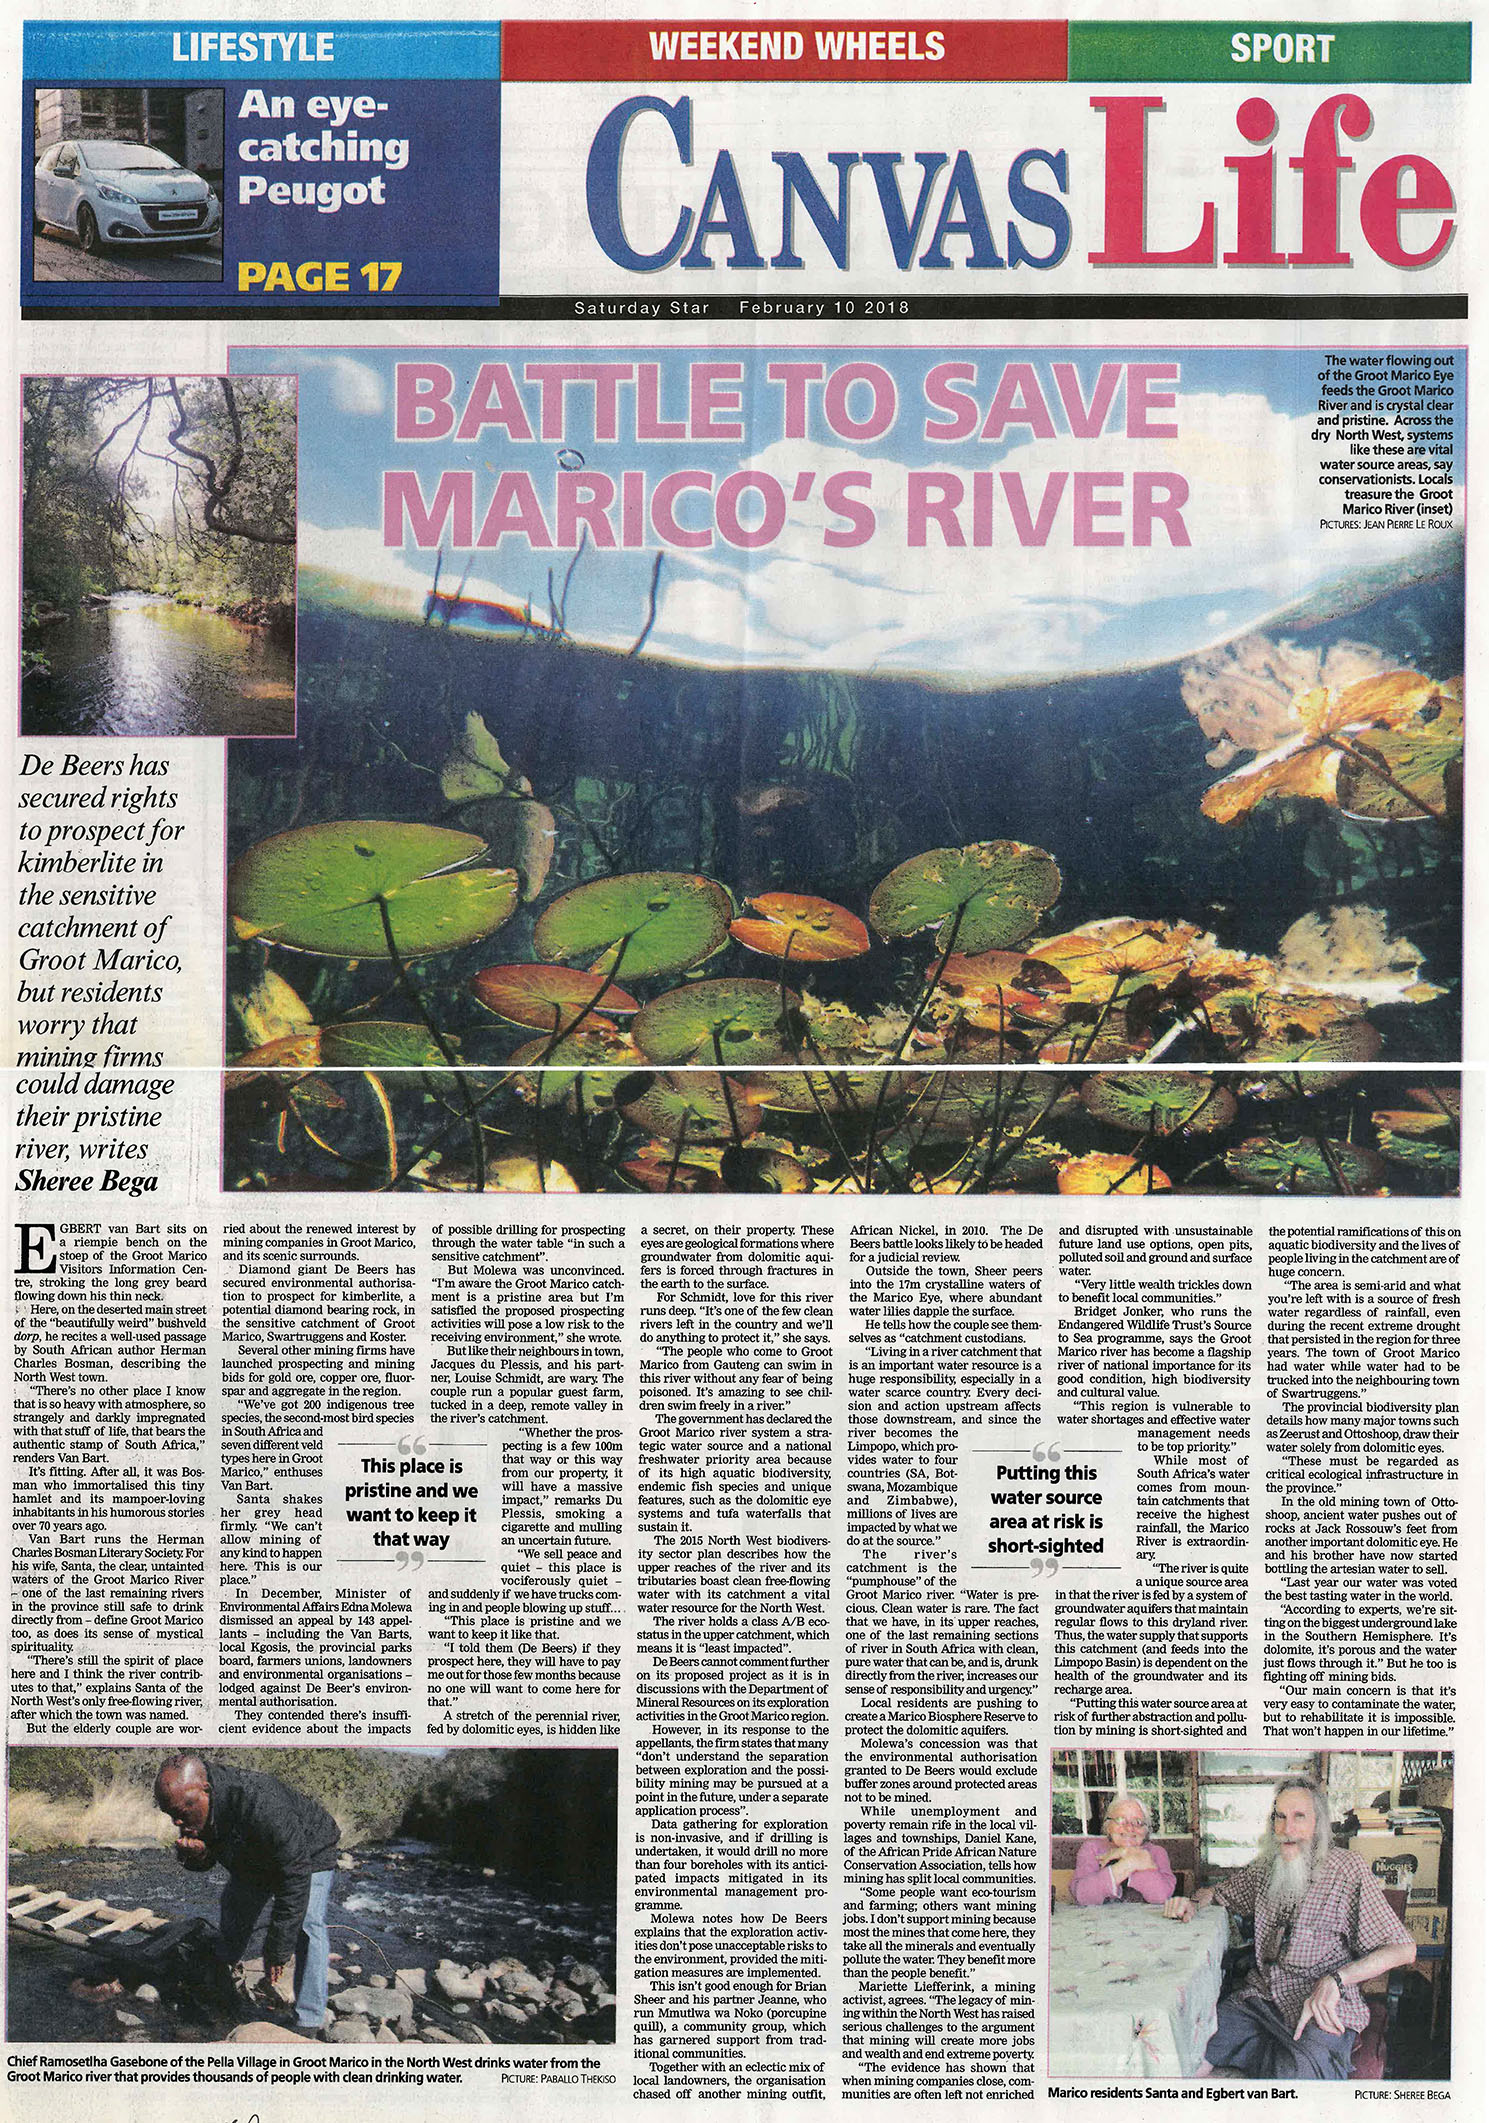 Battle to save Marico's river